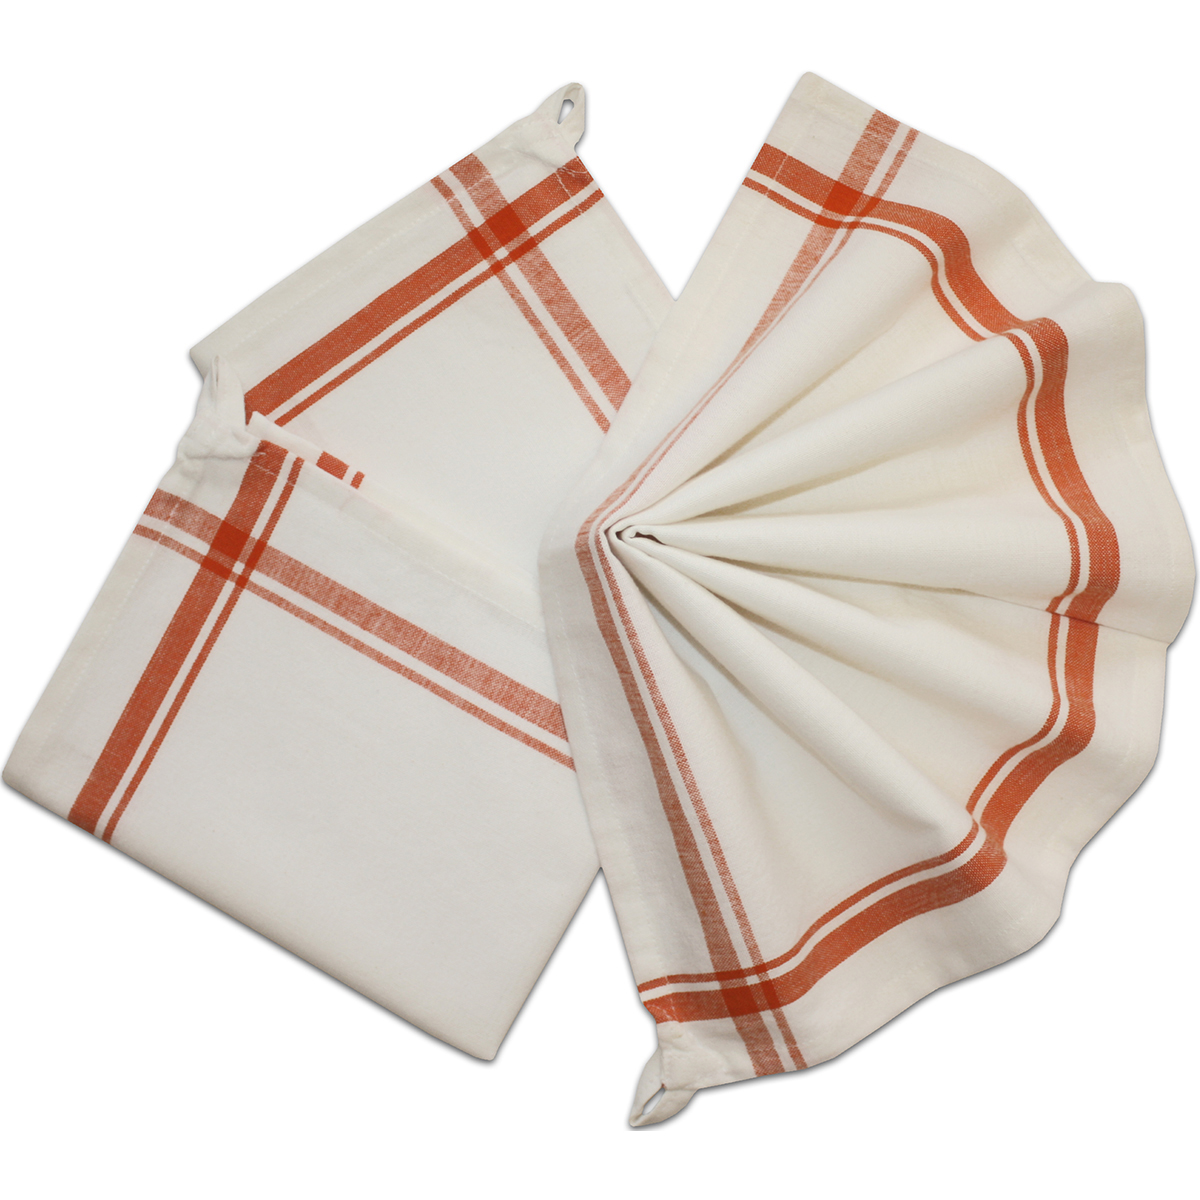 "Aunt Martha's Stitch 'Em Up Retro Stripe Towels 18""X28"" 3/Pk-Orange Stripe"